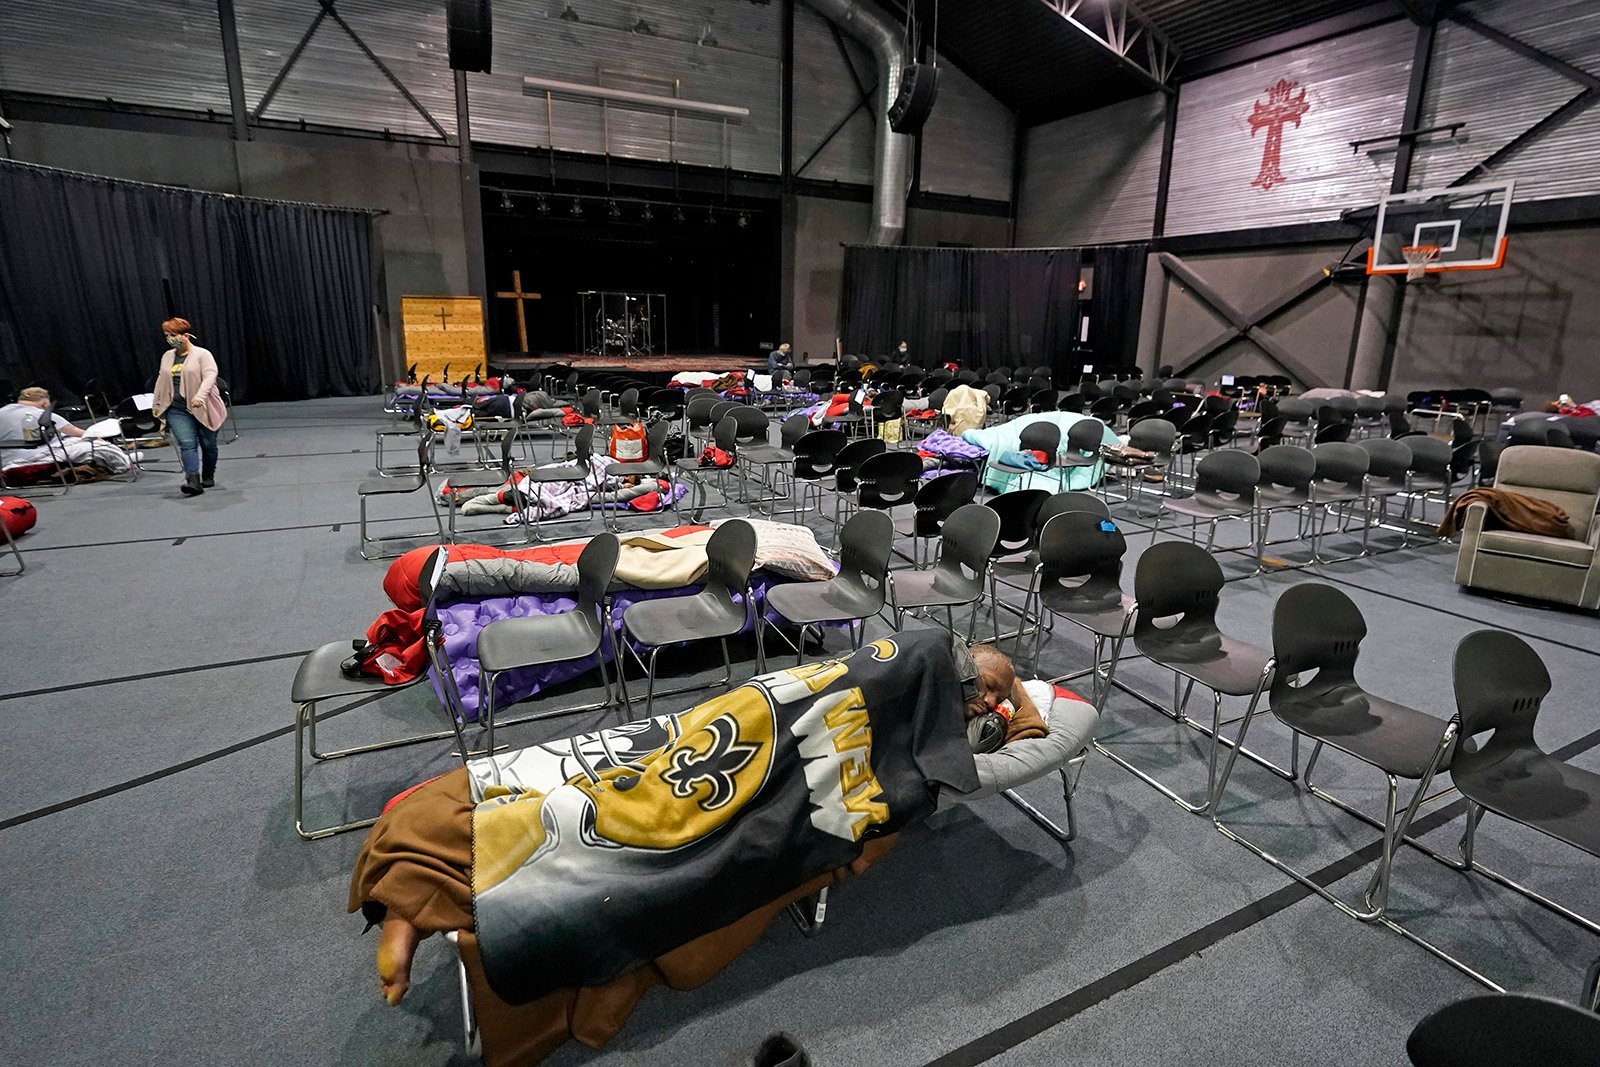 People seeking shelter from below freezing temperatures rest inside a church warming center, Tuesday, Feb. 16, 2021, in Houston. (AP Photo/David J. Phillip)